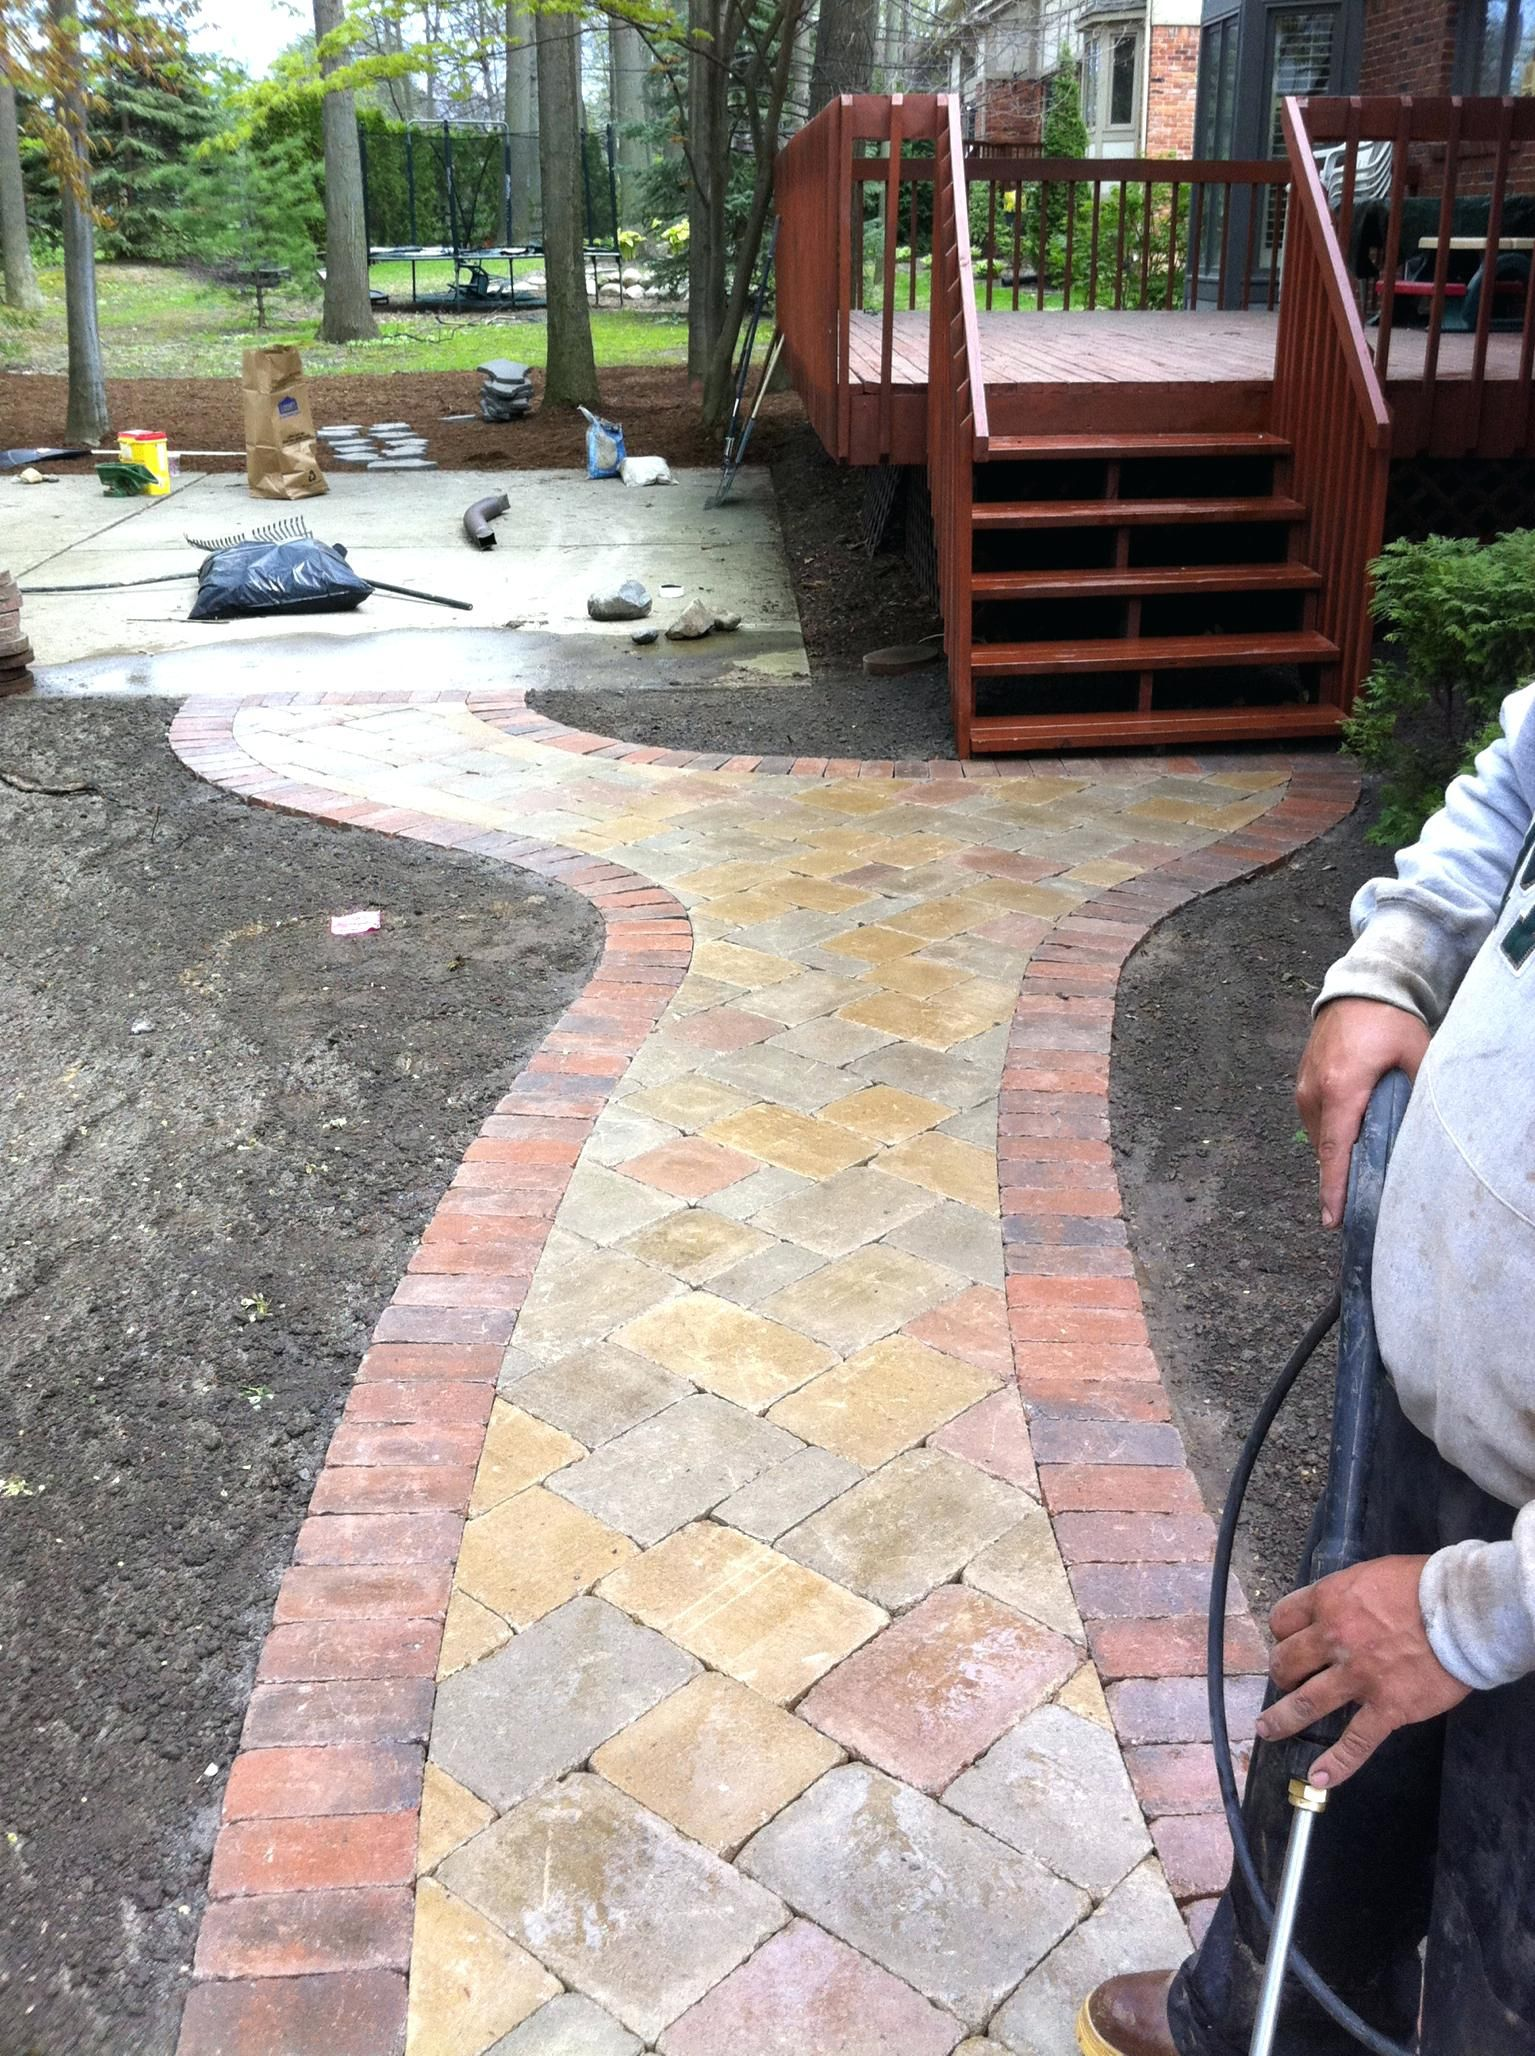 Lovely Patio Design:Brick Walkway Paver Patio Calculator Designs Photos Porch Cool  Design Backyard Full Size